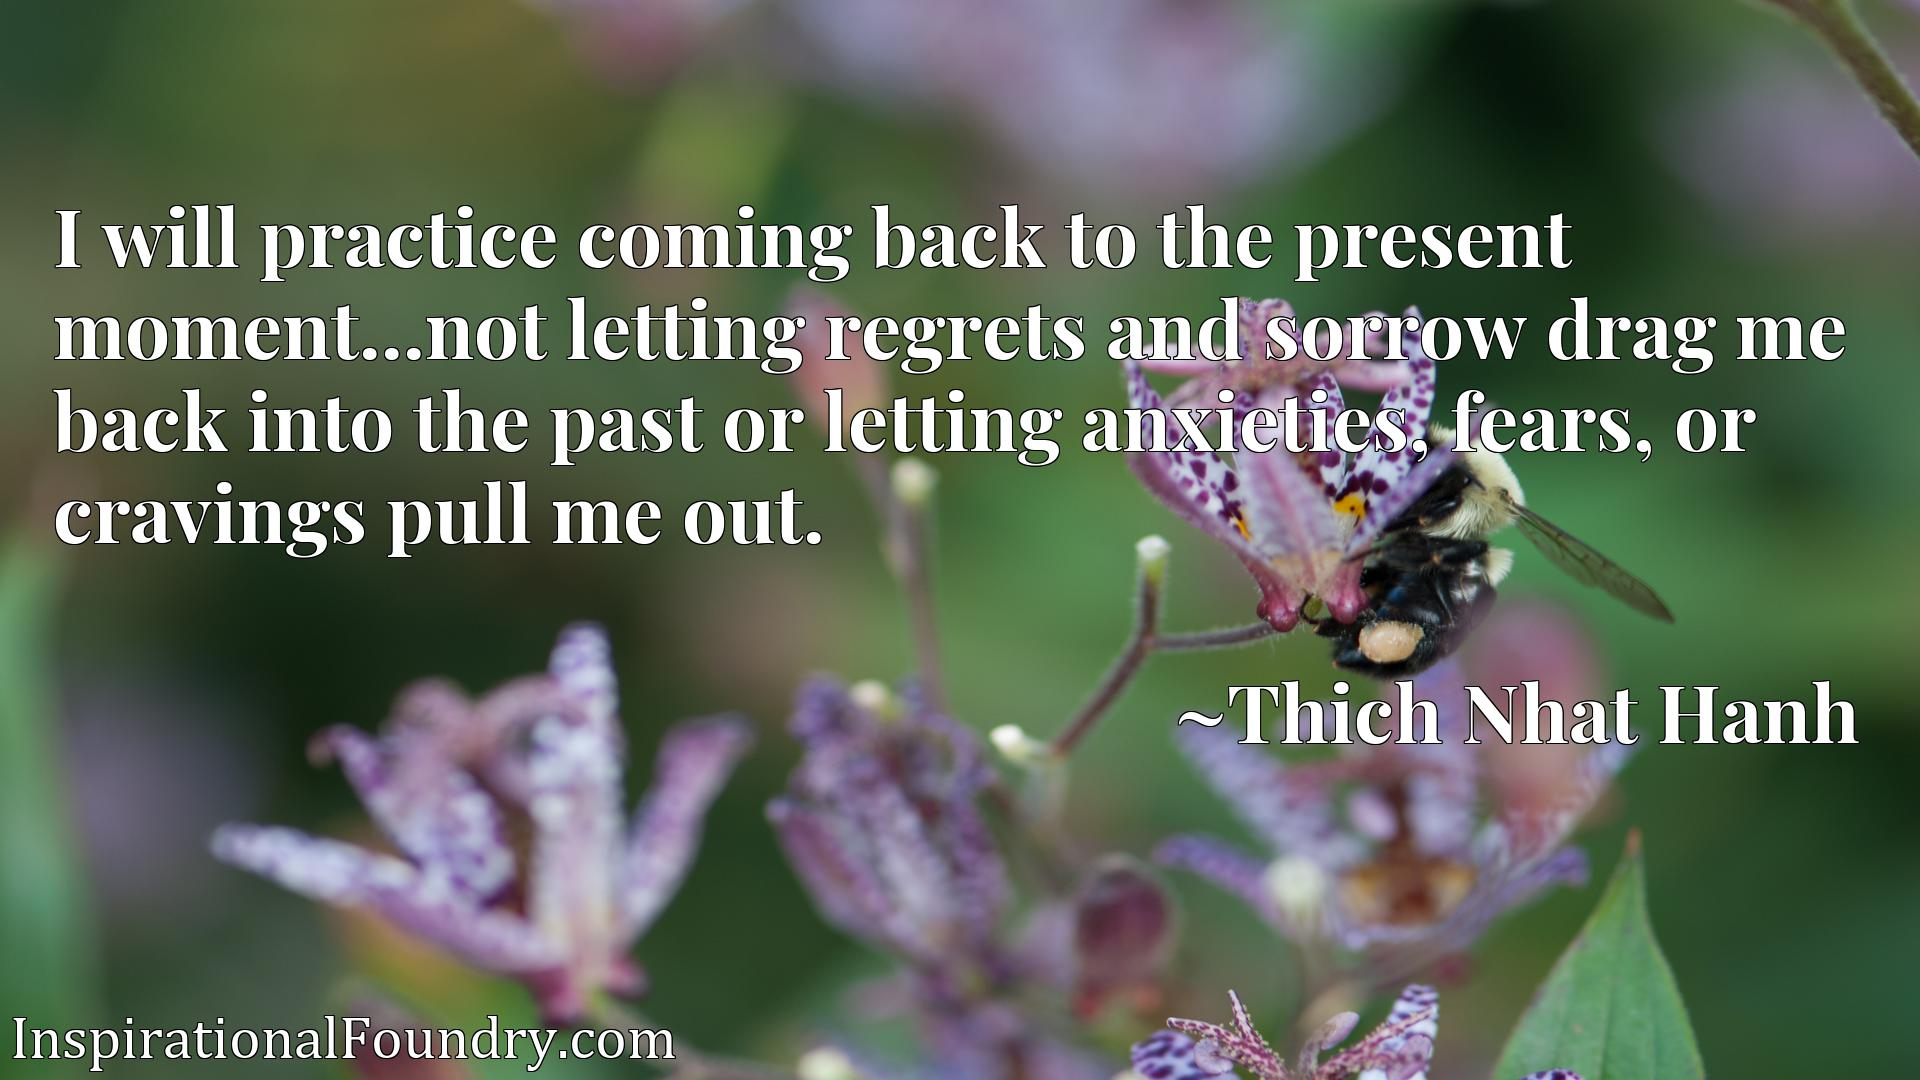 I will practice coming back to the present moment...not letting regrets and sorrow drag me back into the past or letting anxieties, fears, or cravings pull me out.